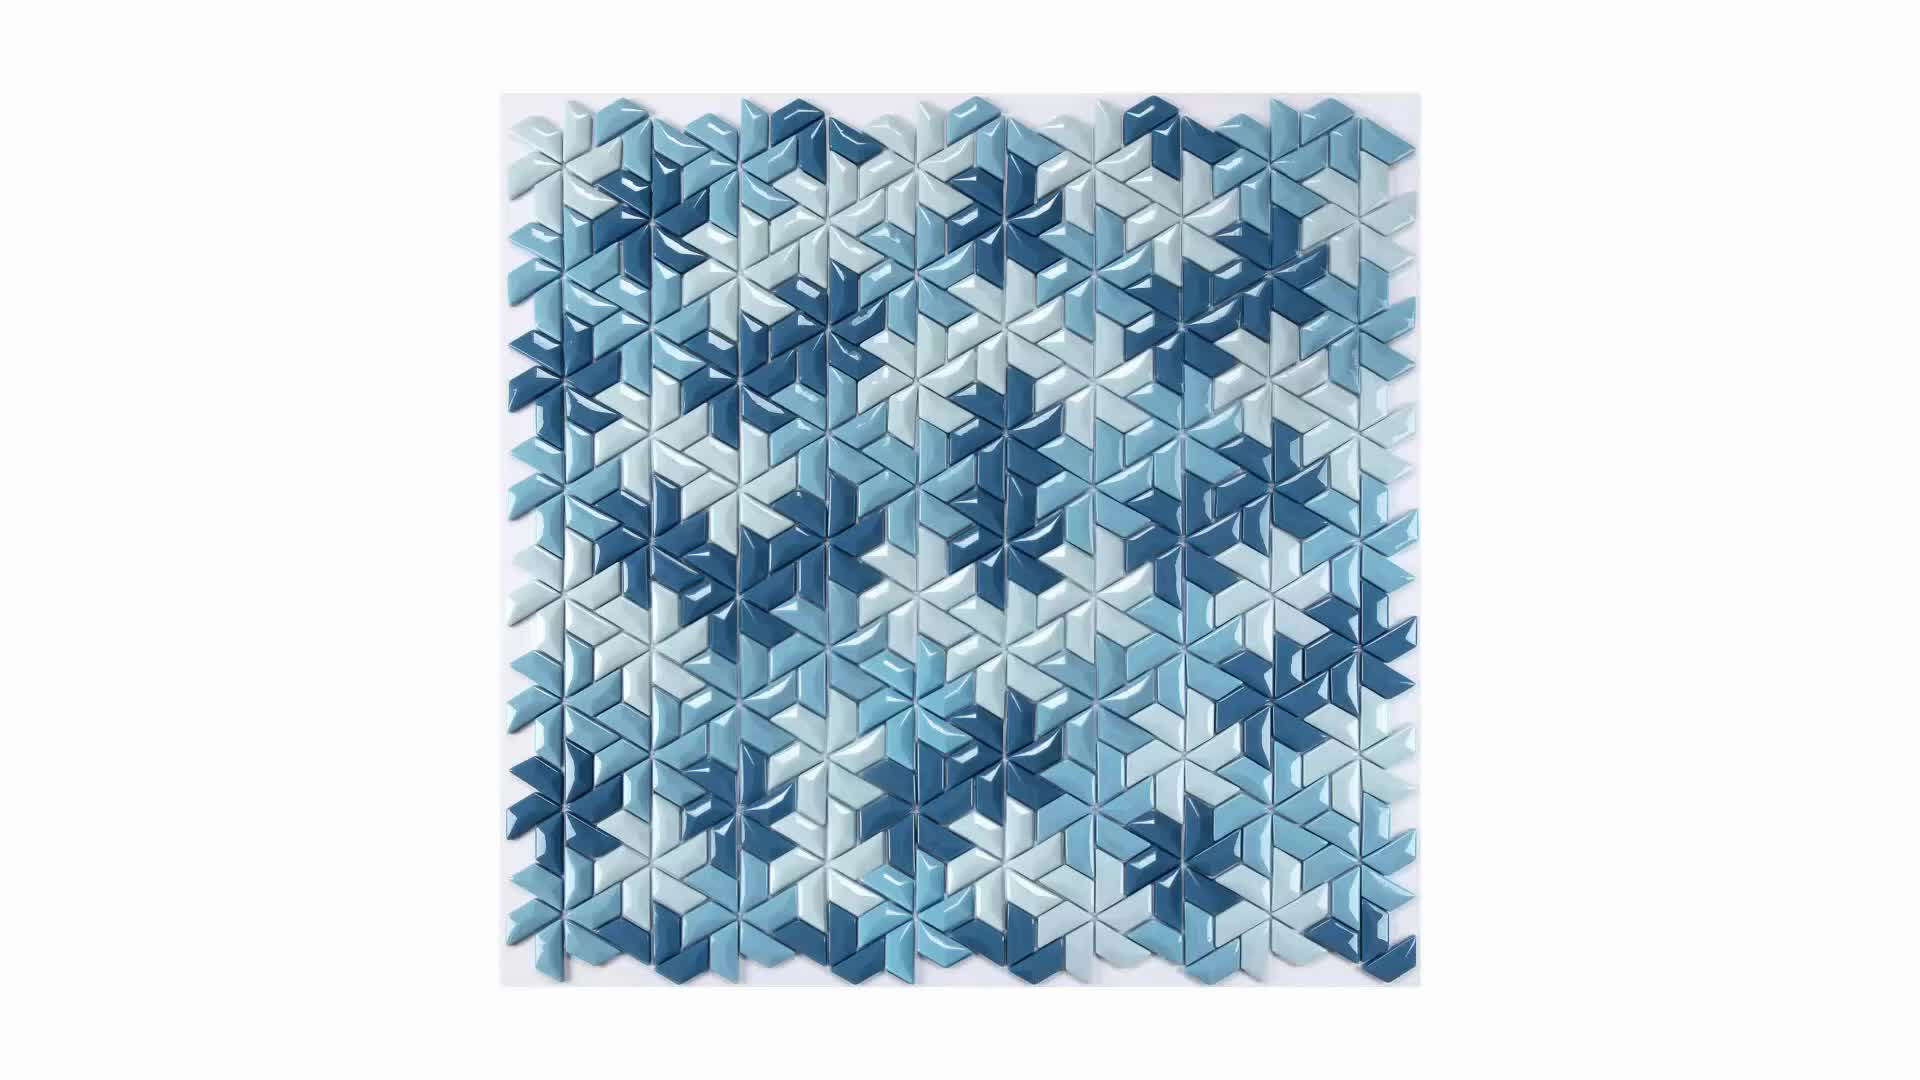 Blue 3d Unique Design Recycle Mosaic Enamel Glass Tile Backsplash ...